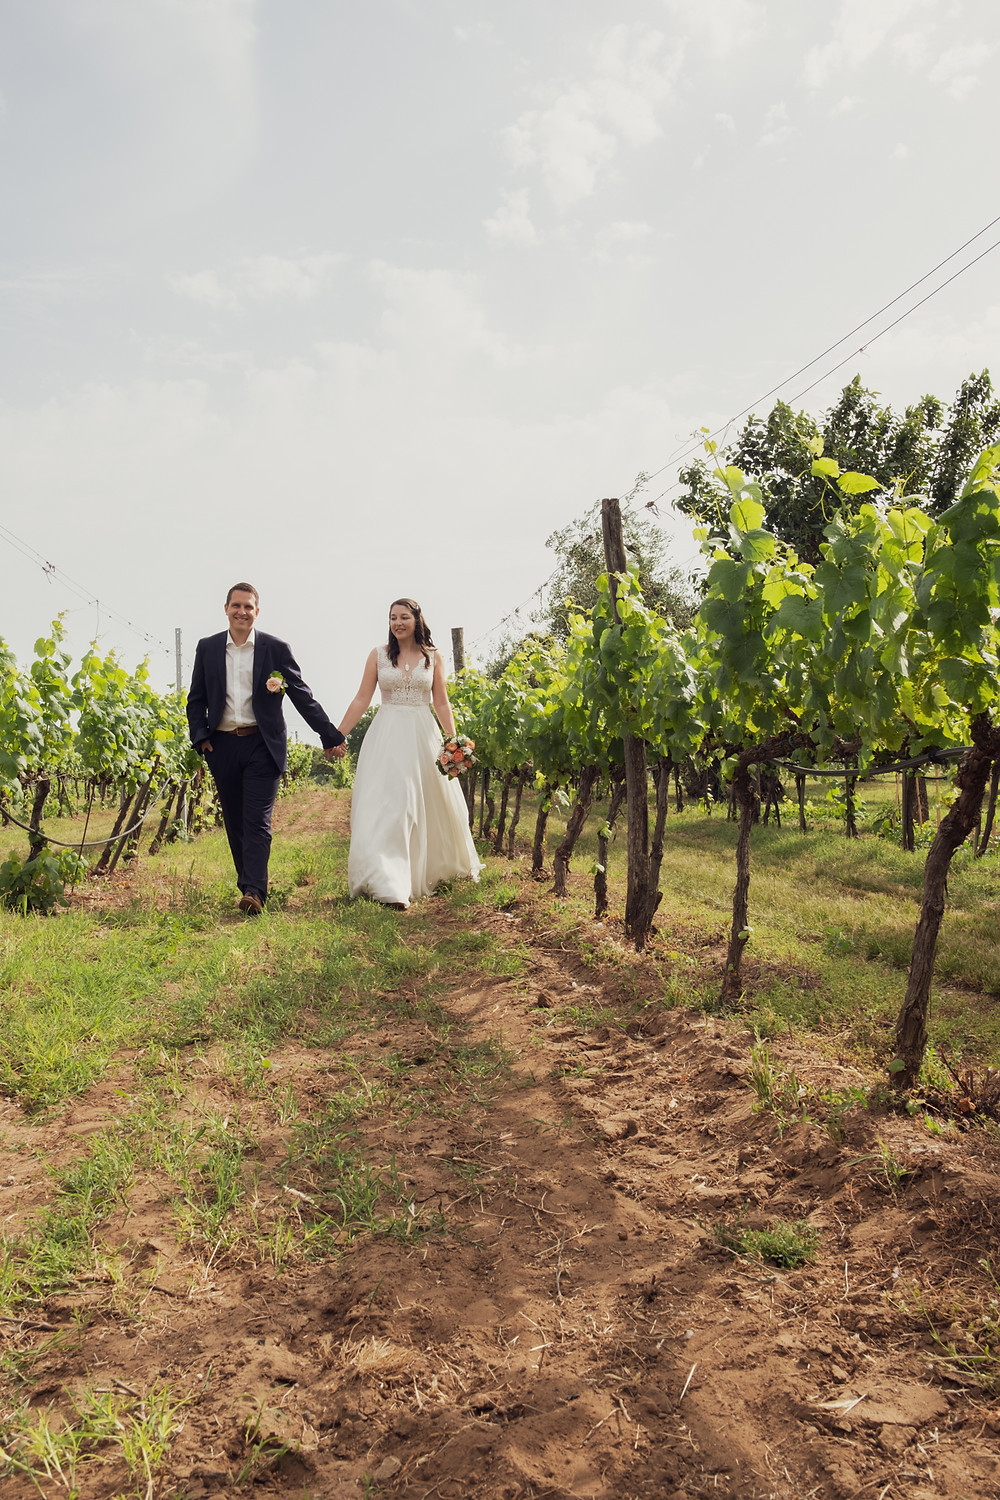 Wedding in Tuscany, Italy